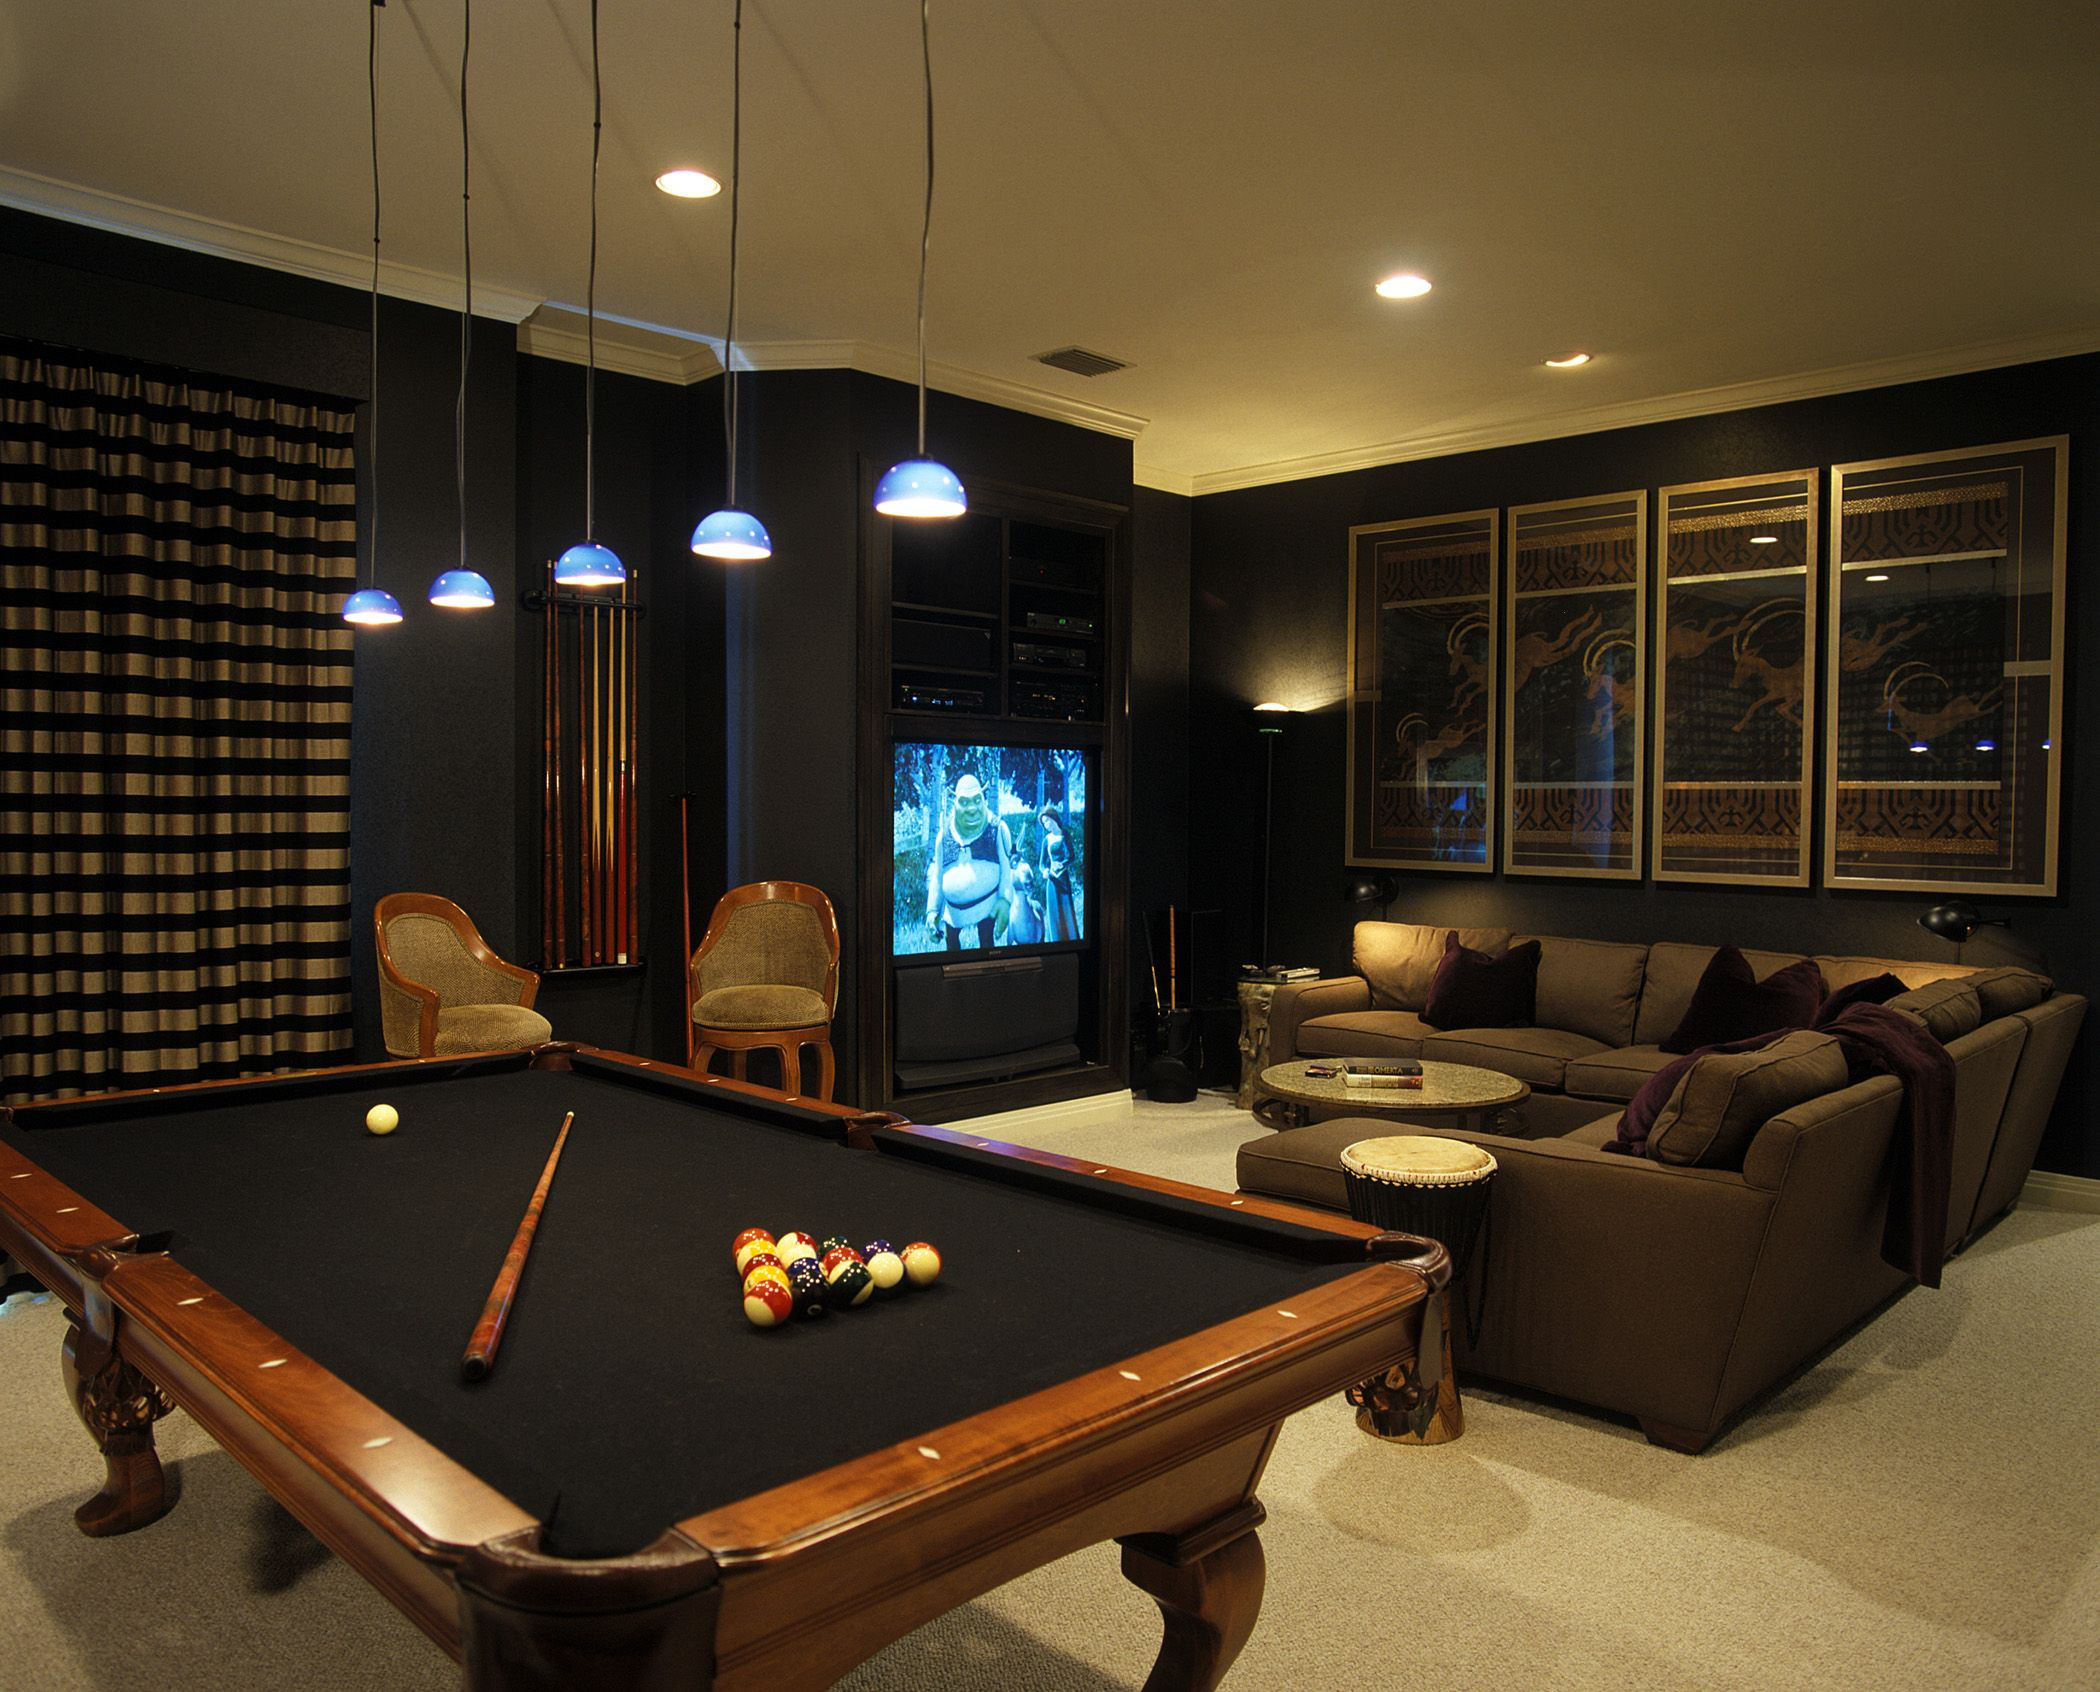 Best ideas about Video Game Room Furniture . Save or Pin Dark media room with pool table more MEDIA Now.